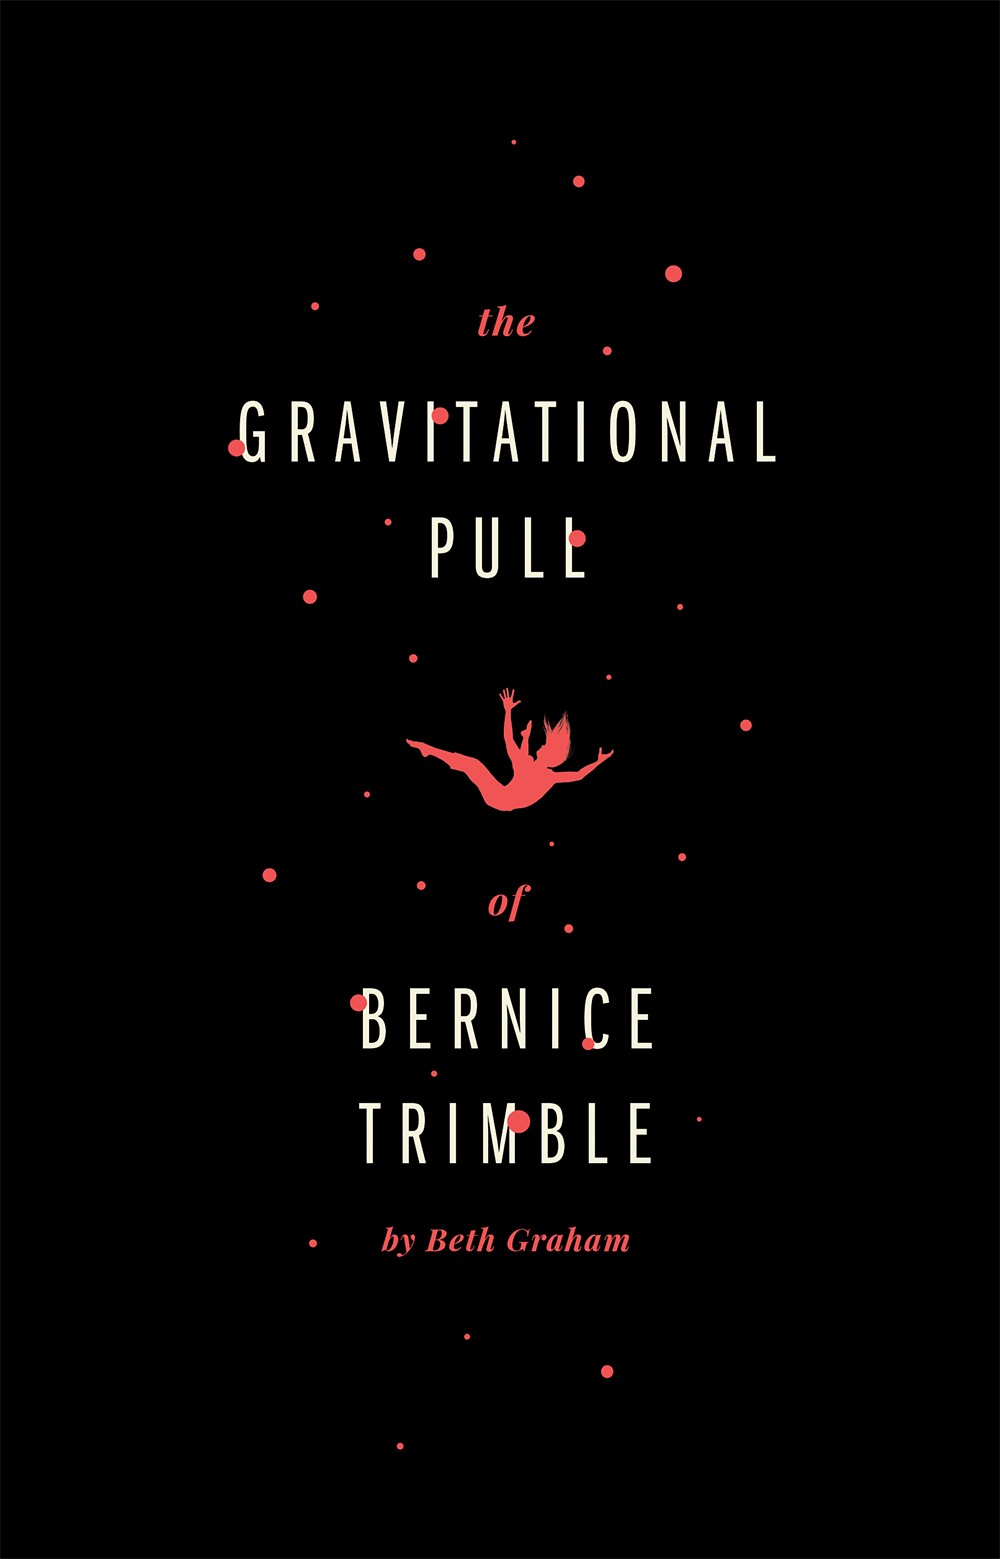 The Gravitational Pull of Bernice Trimble (print)